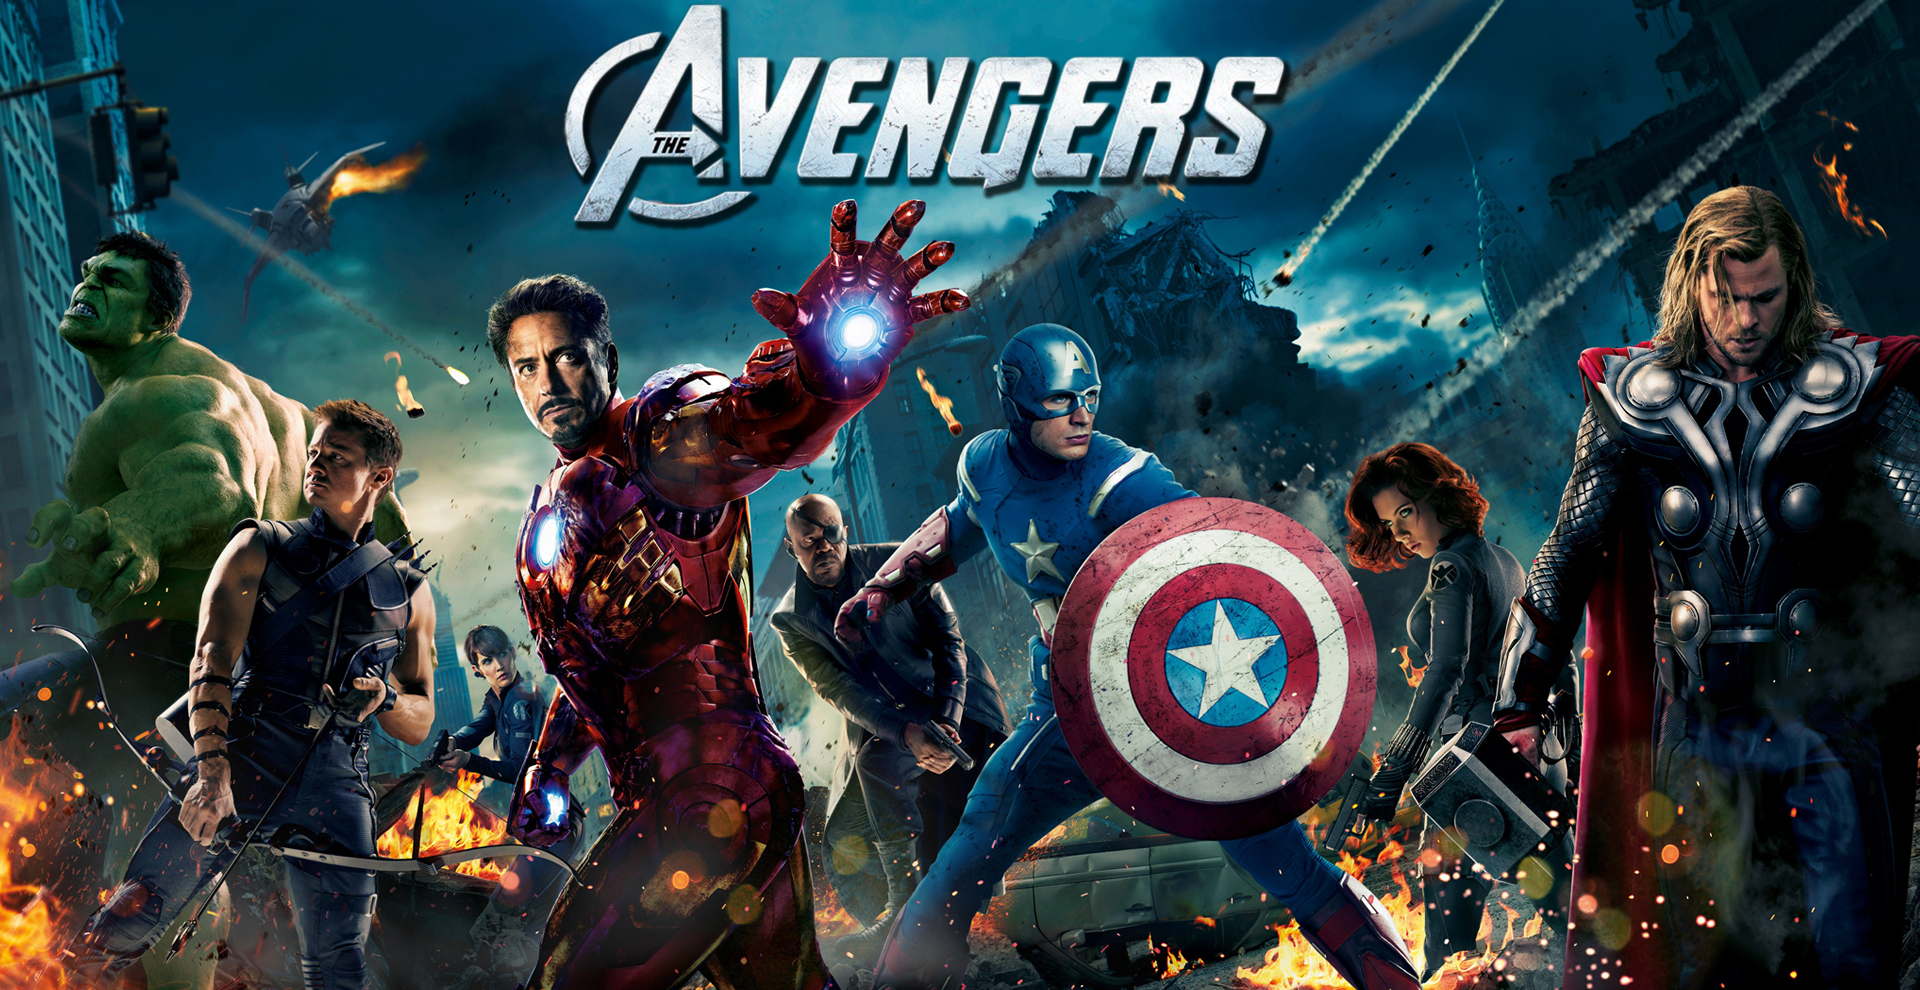 The avengers 1080p movie download